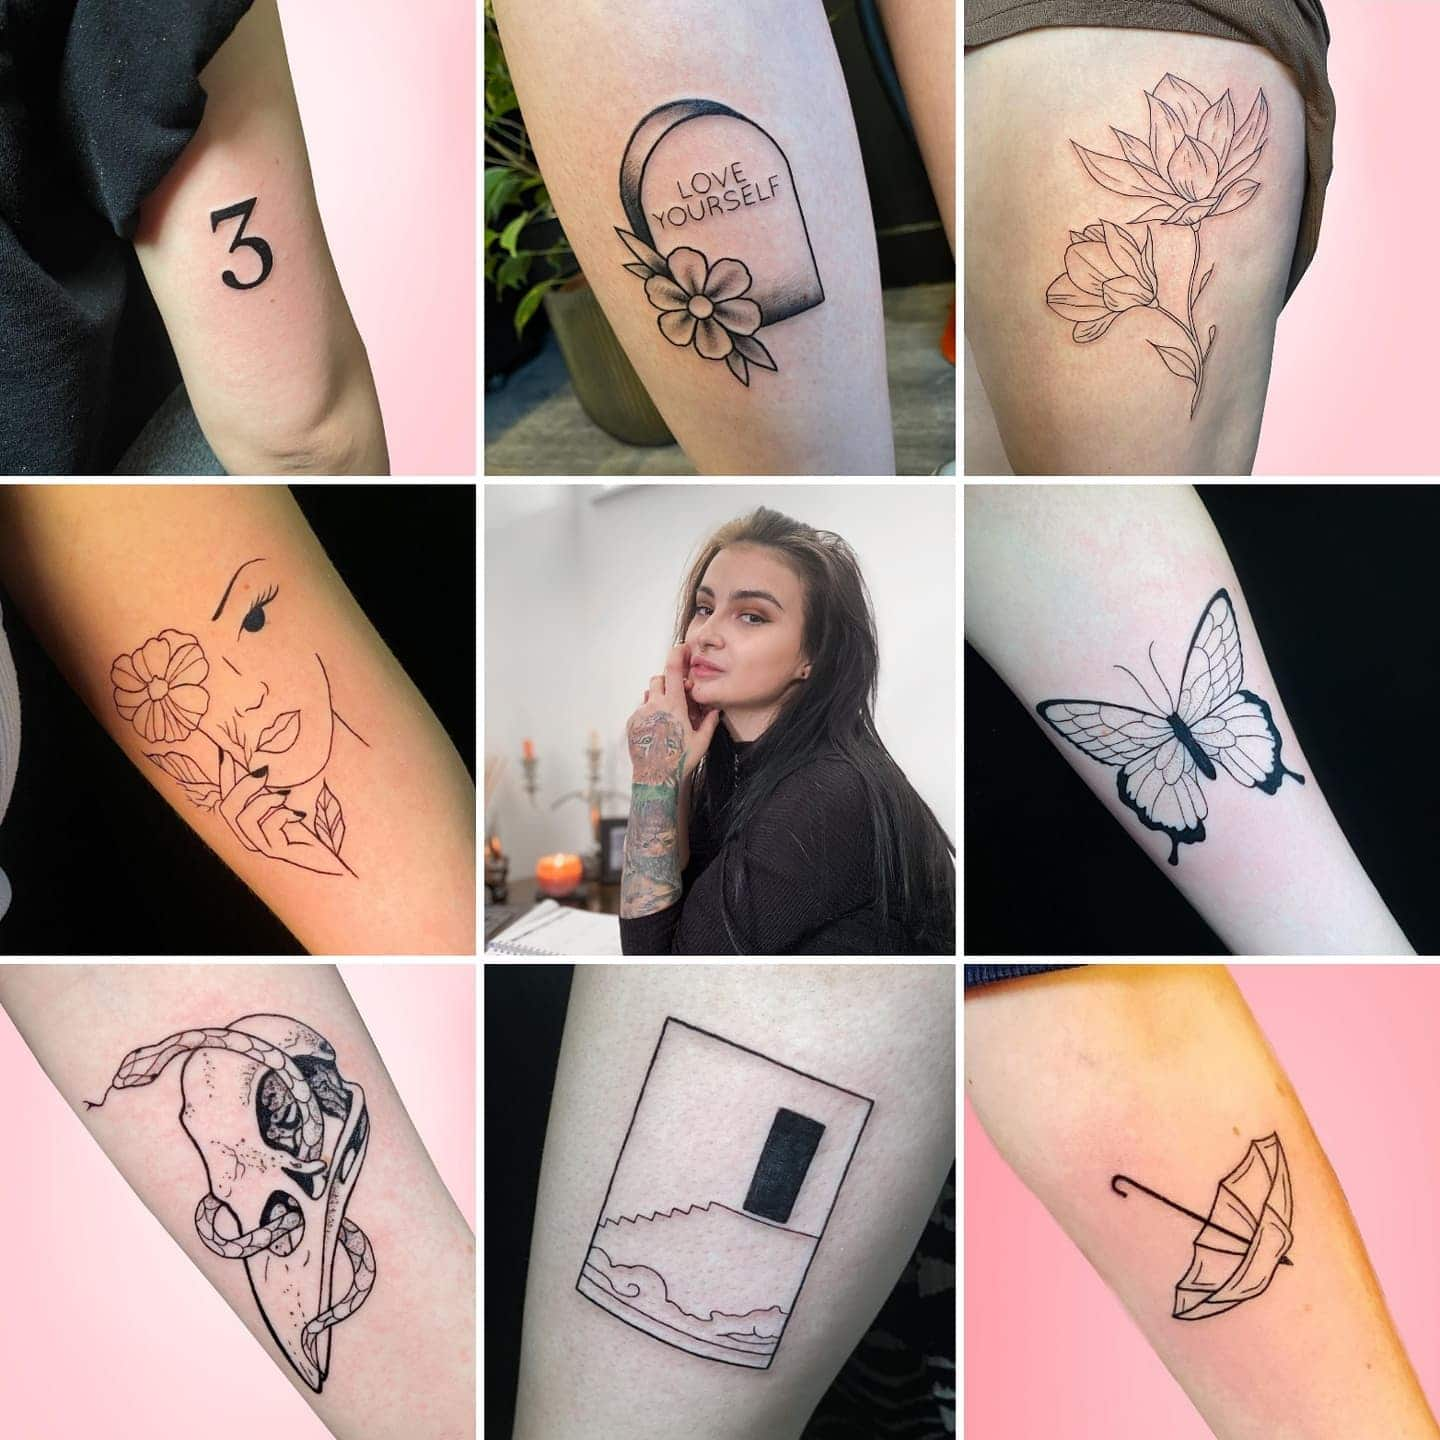 Jess Wii is returning to Watermelon for another guest spot between the 7th and 11th September!!! Fill out the enquiry form on the homepage of our website to book in! jess.wii.tattoos